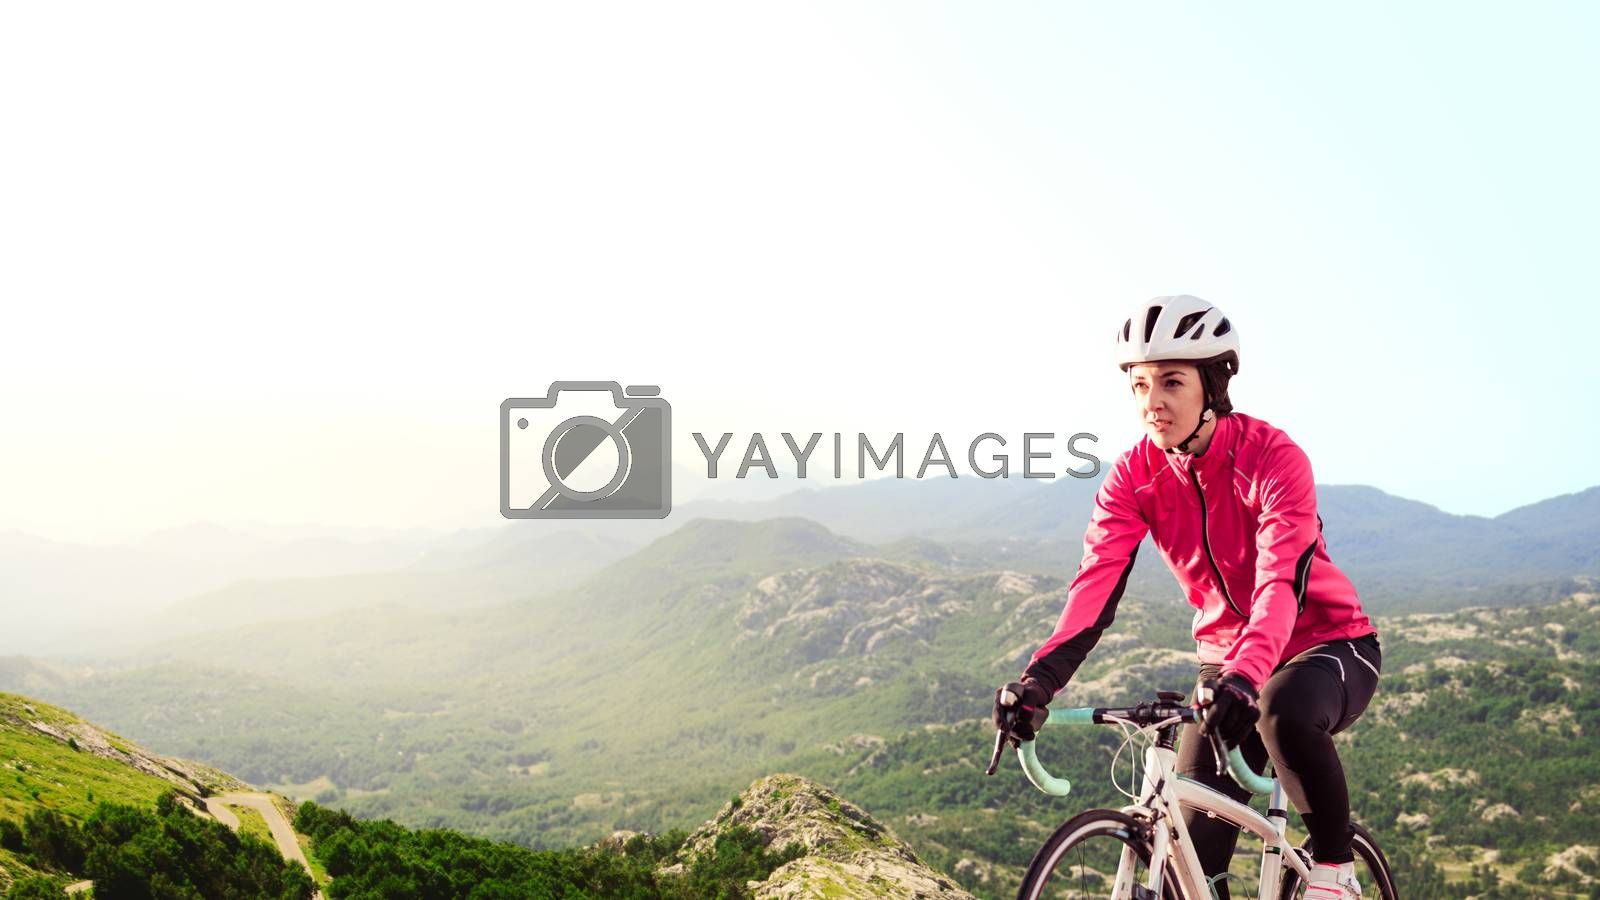 Young Woman in Bright Pink Jacket Riding Road Bicycle on the Mountain Alpine Road. Healthy Lifestyle and Adventure Concept.